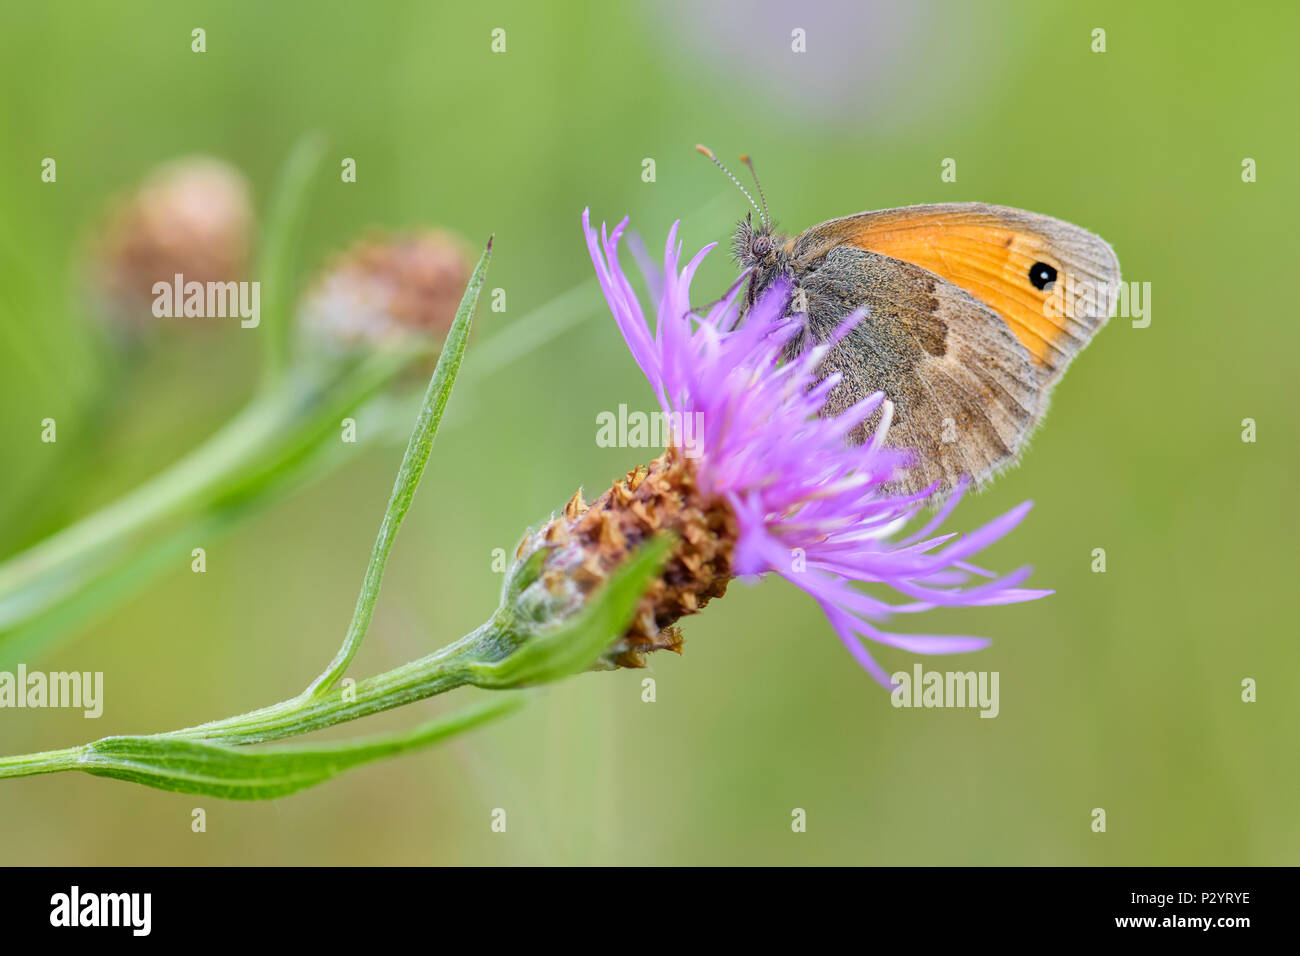 Small Heath - Coenonympha pamphilus, beautiful brown and orange butterfly from Europe and North Africa. - Stock Image